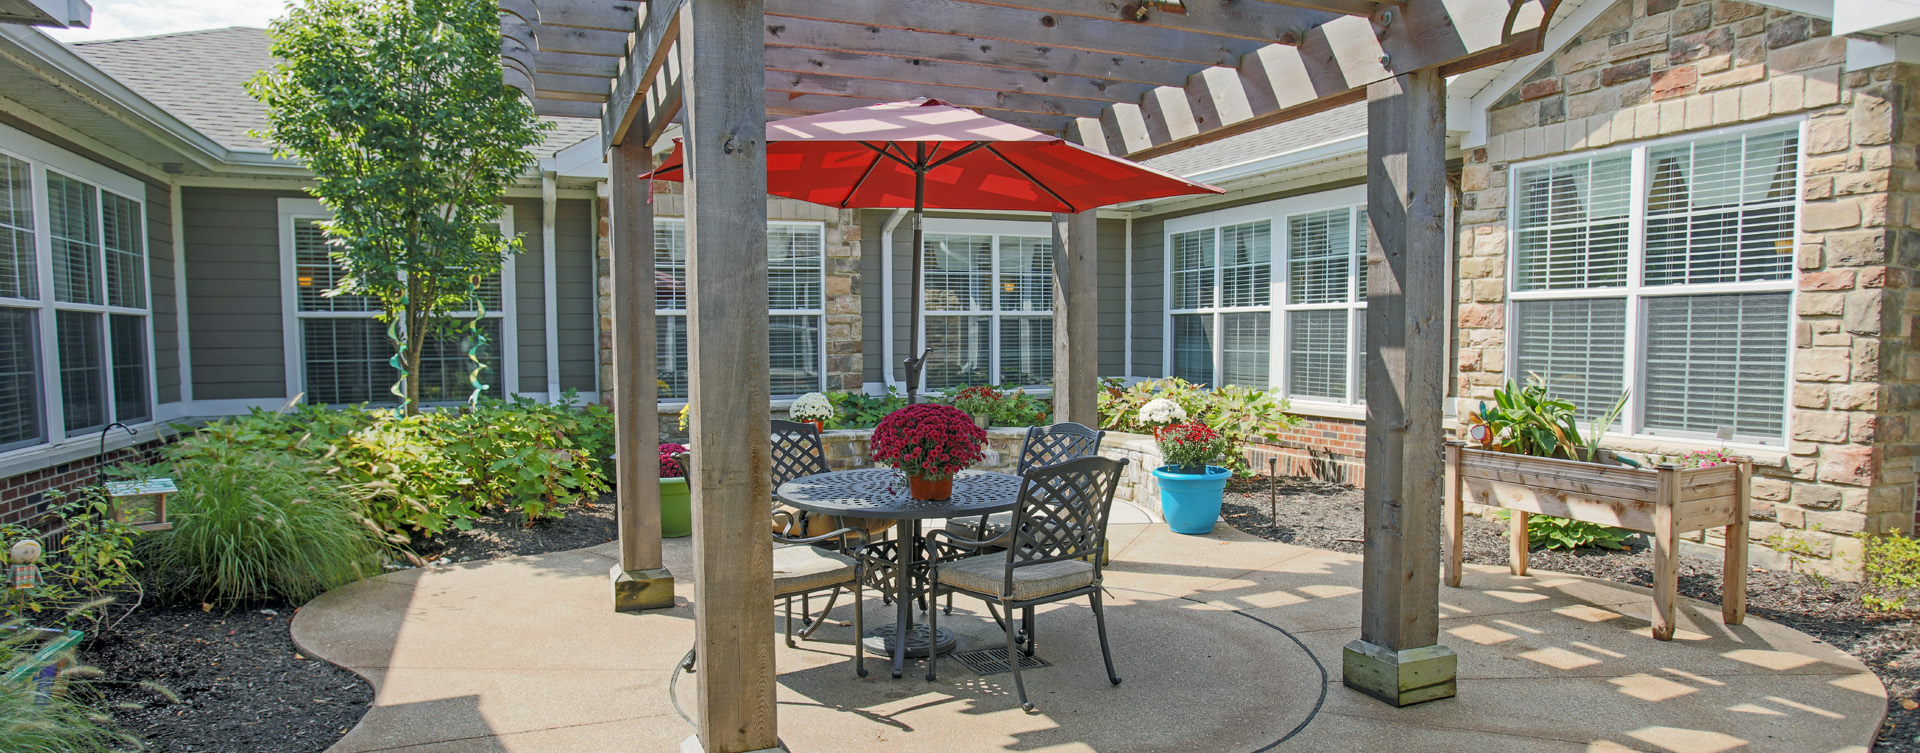 Residents with dementia can enjoy the outdoors by stepping into our secure courtyard at Bickford of Carmel